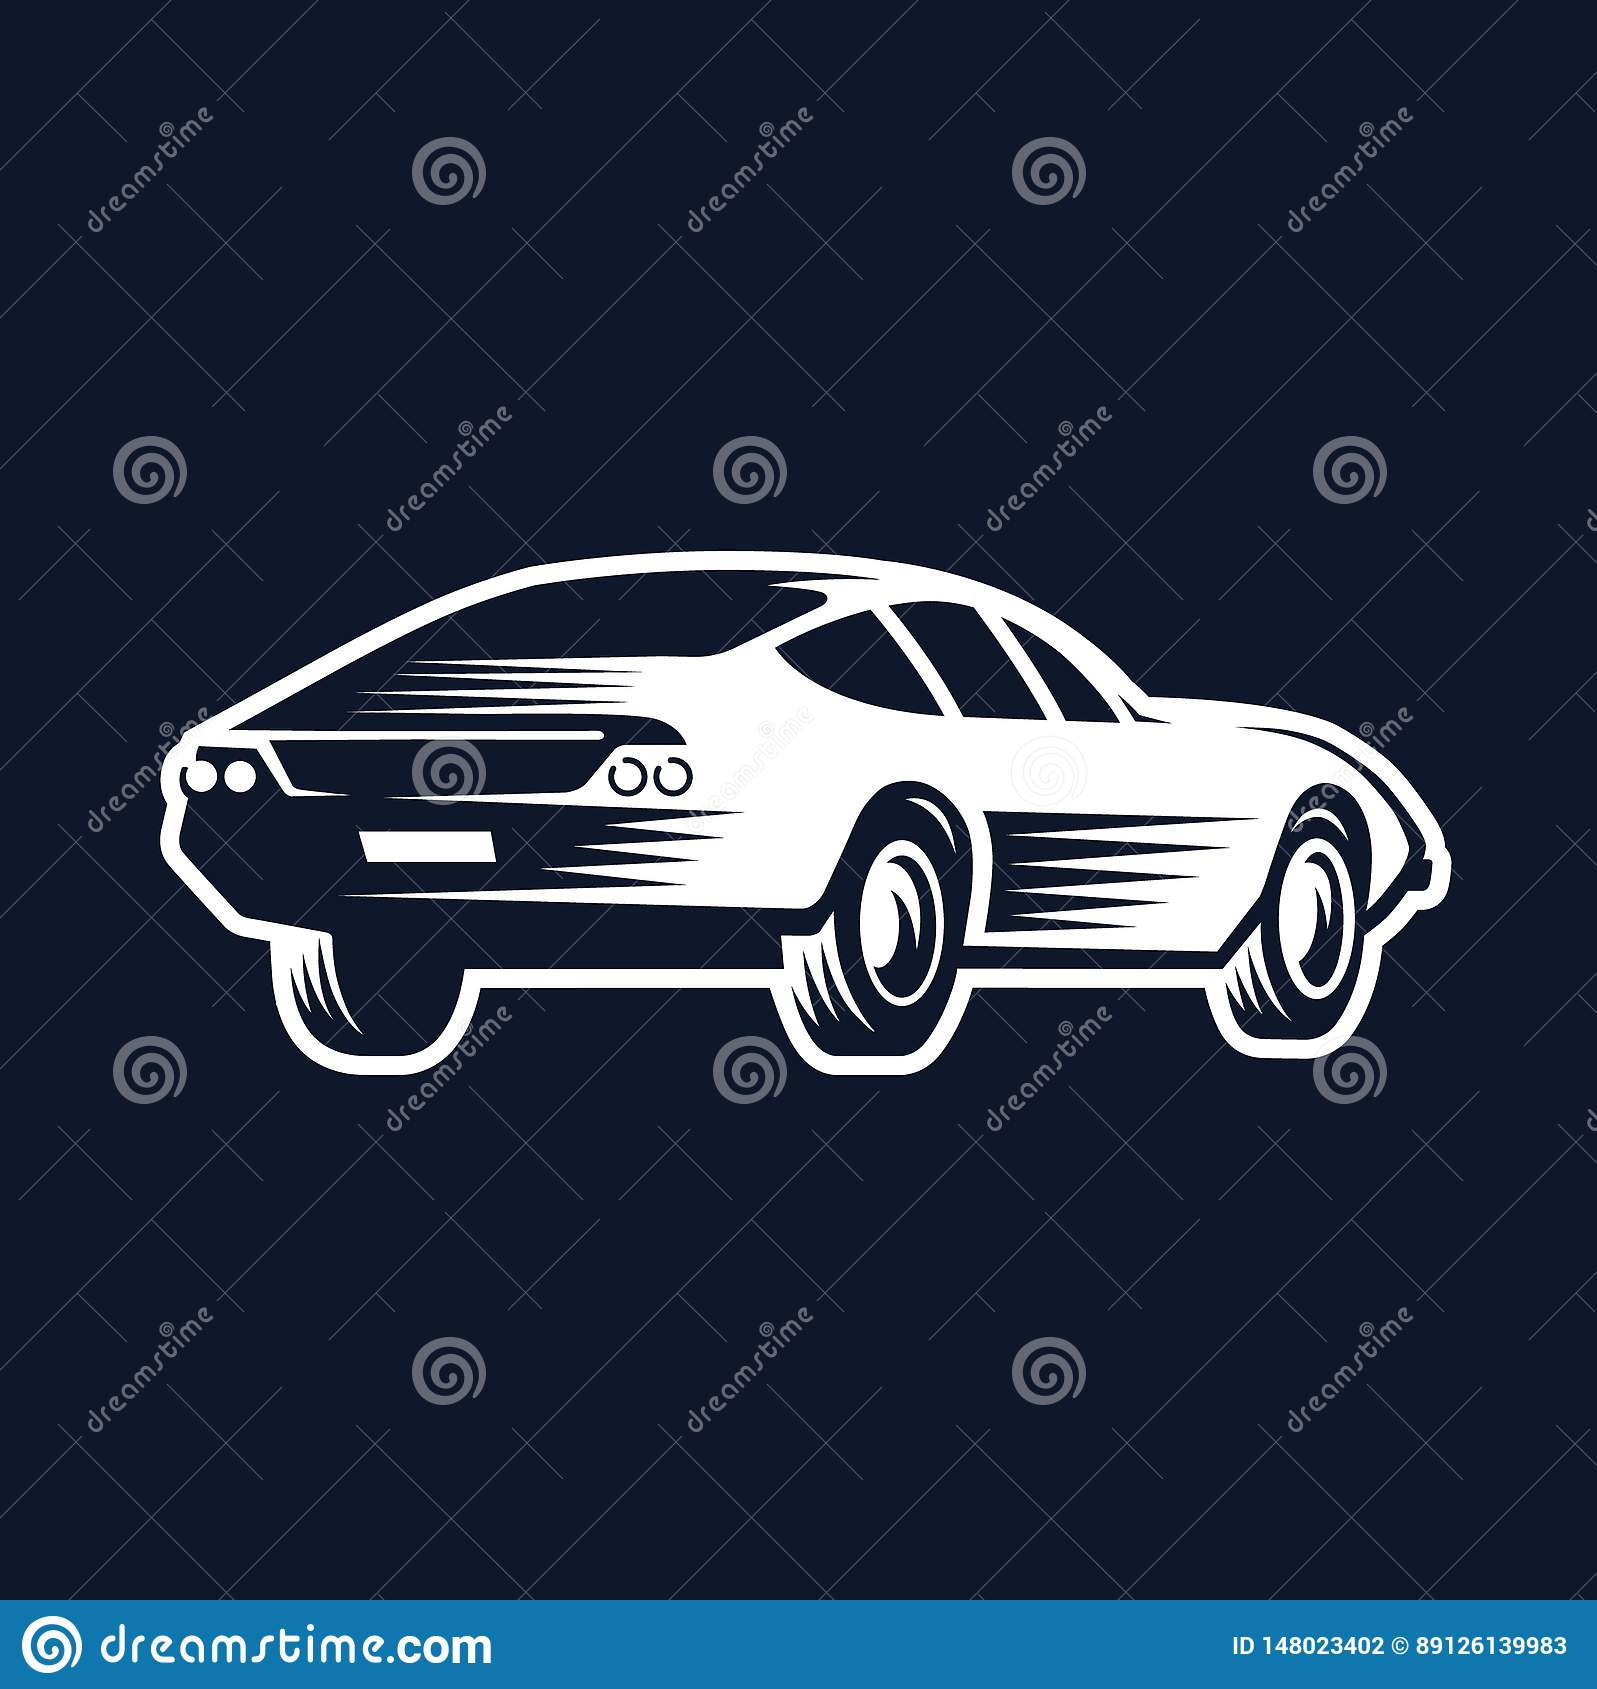 Logo Of The Car  Back View  Stock Vector - Illustration of